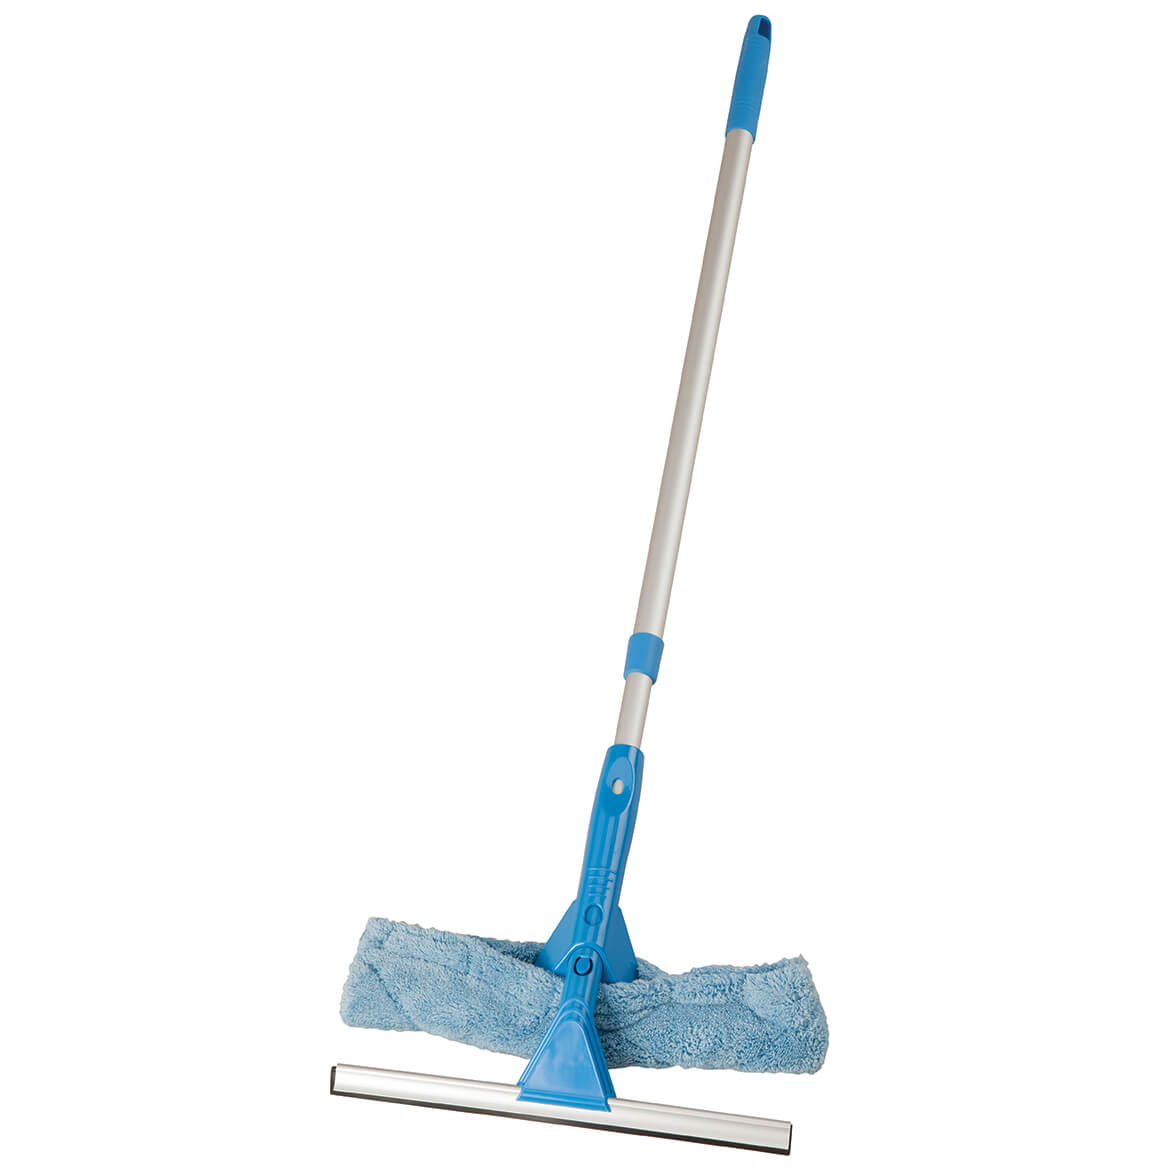 Telescoping Microfiber Cleaning Tool and Squeegee Set